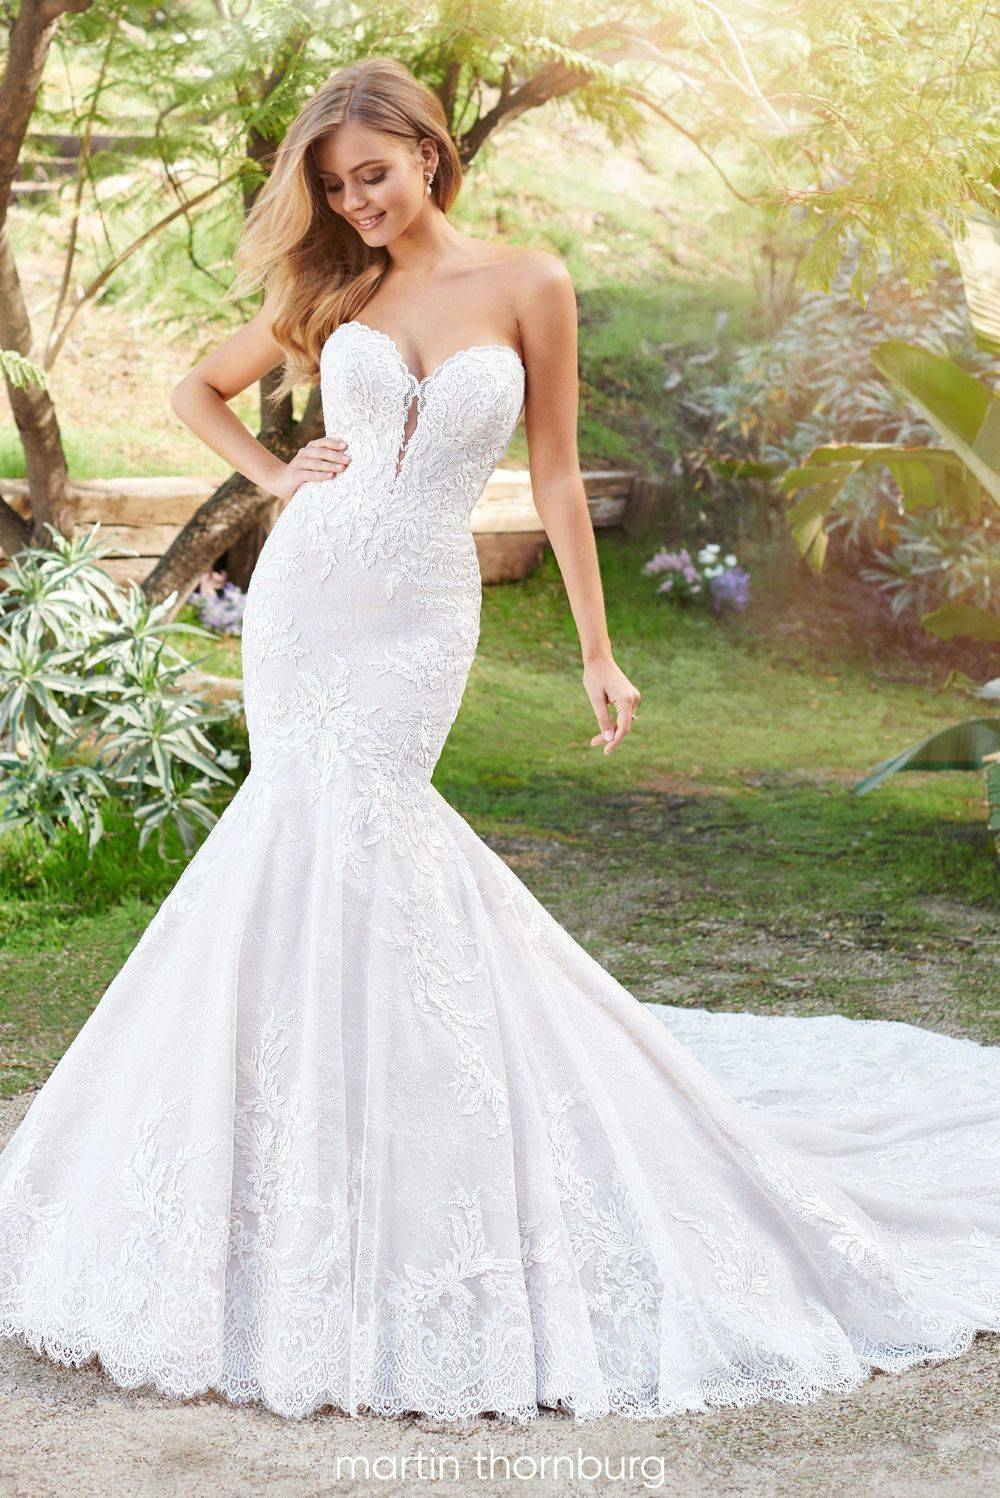 220261 martin thornburg, fit and flare, wedding dress, sweetheart neckline, lace, long train